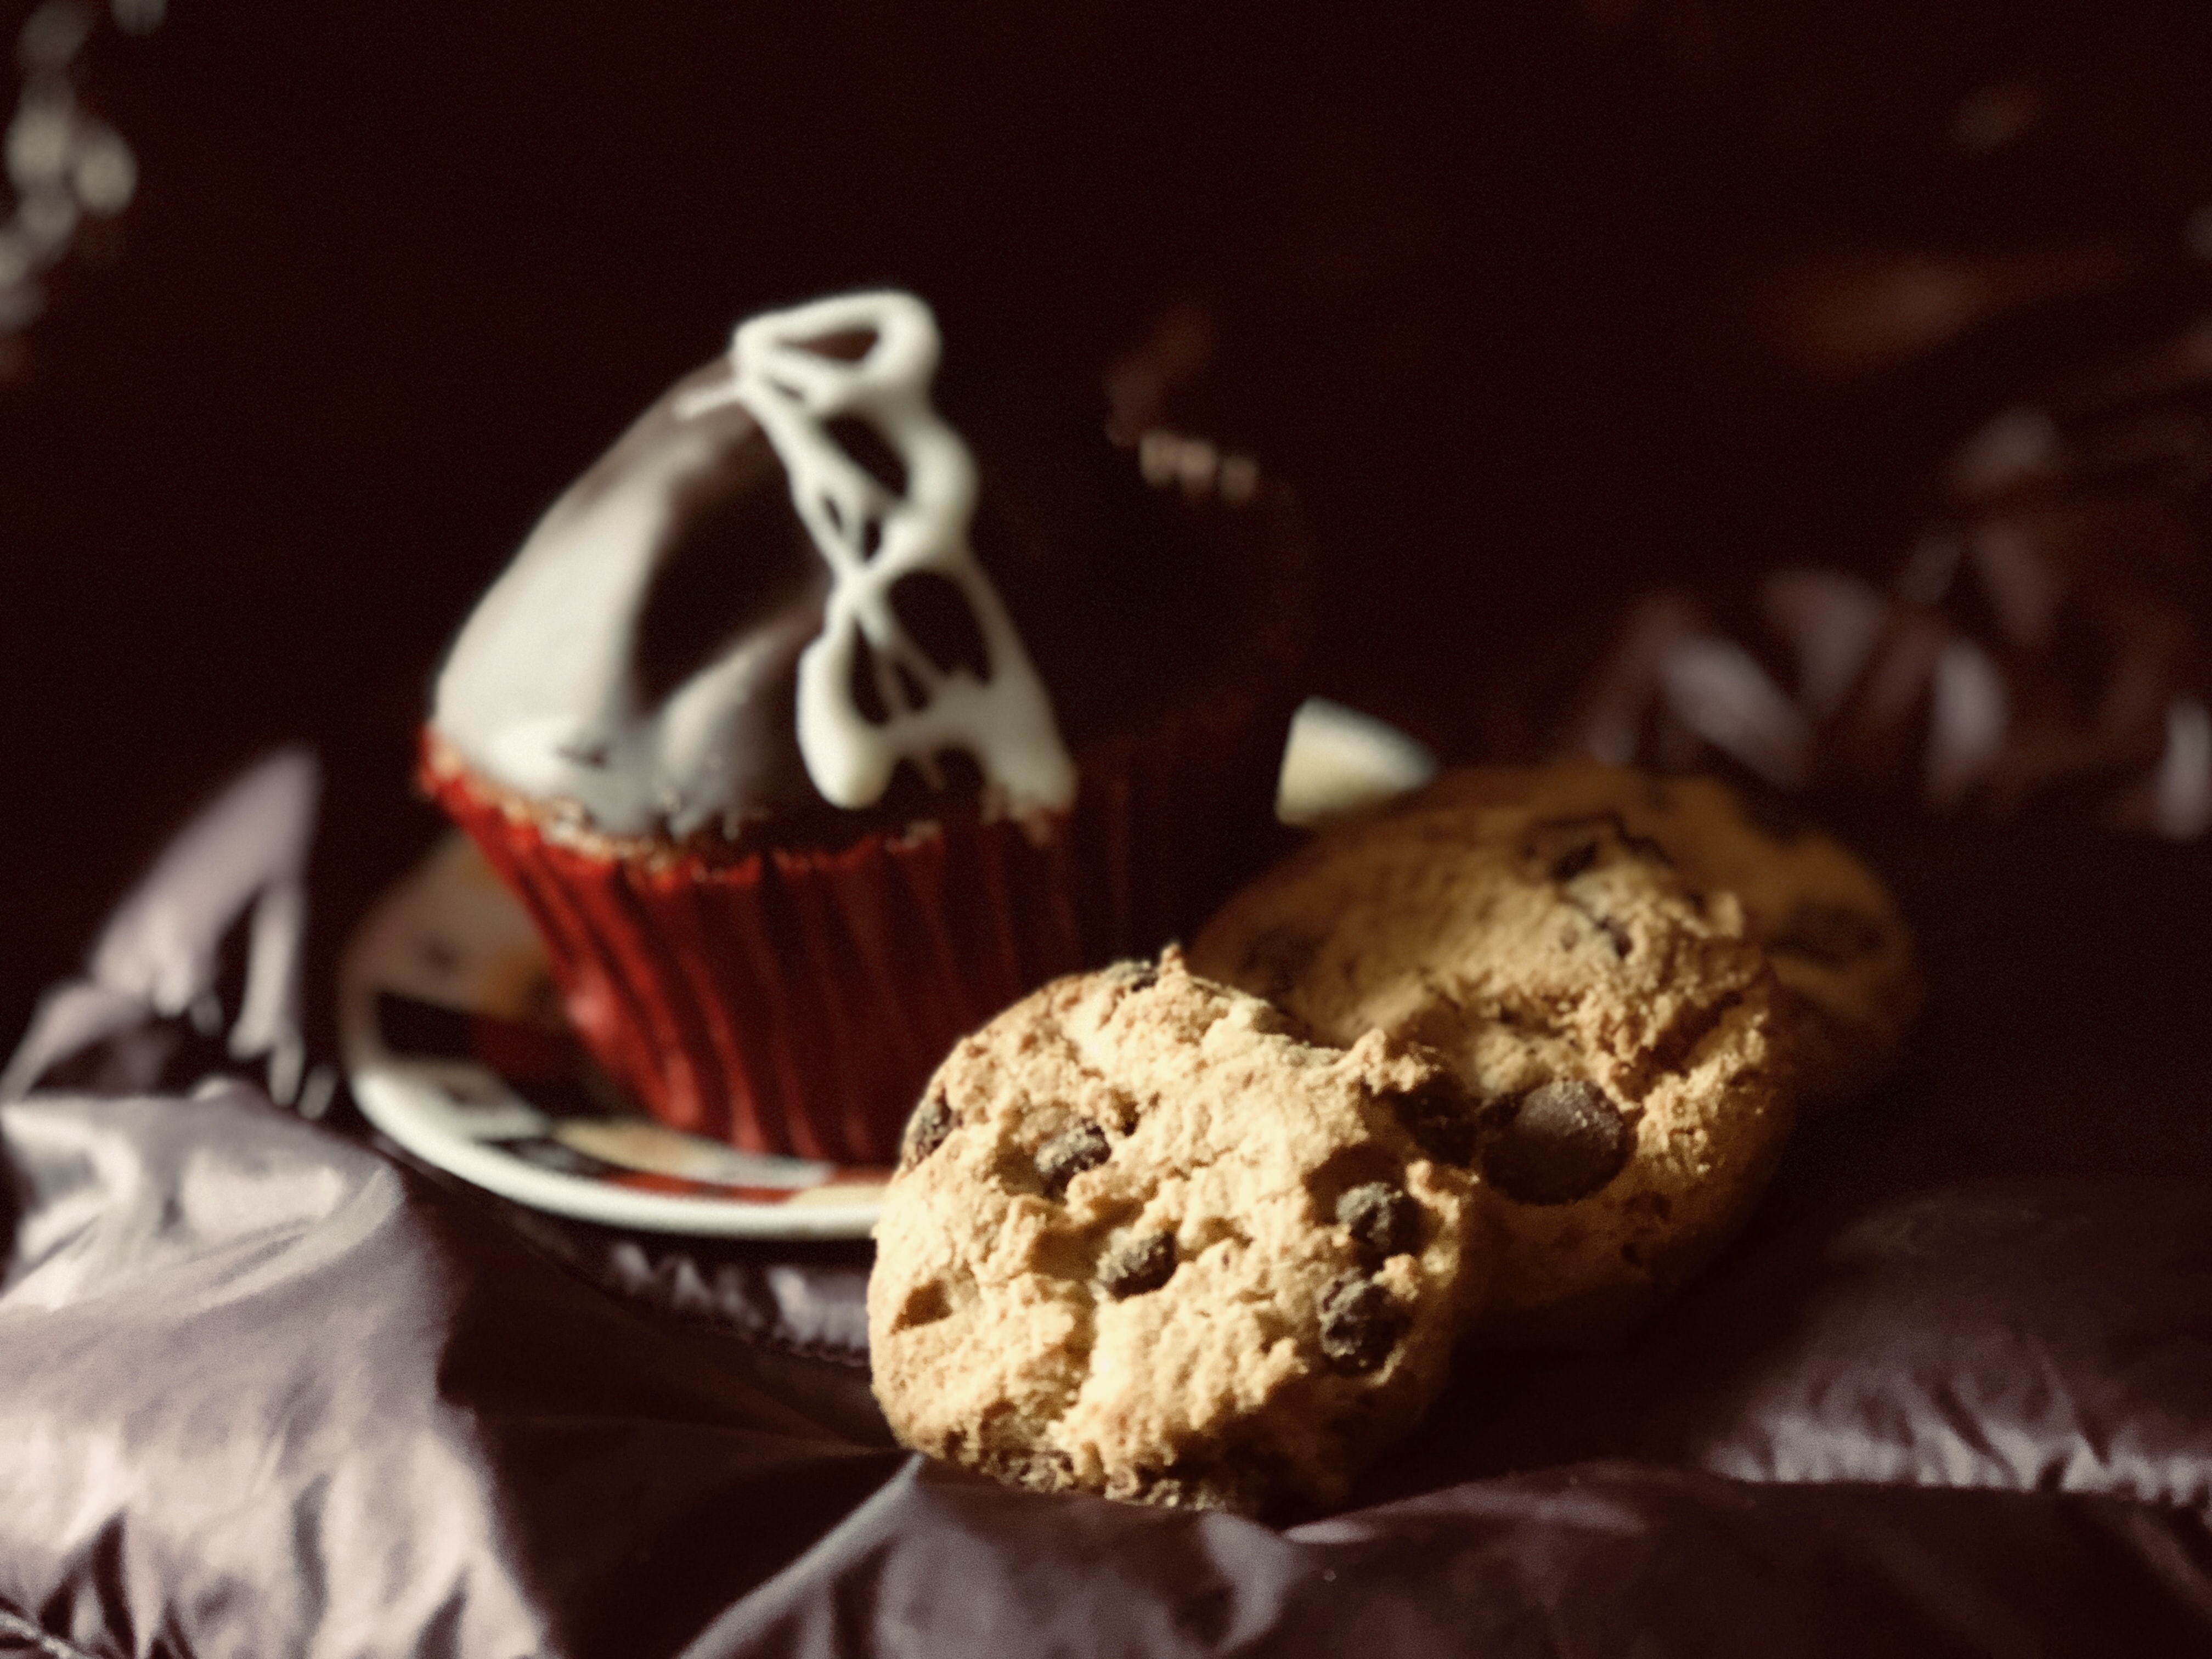 cookies and chocolate muffin on black textile